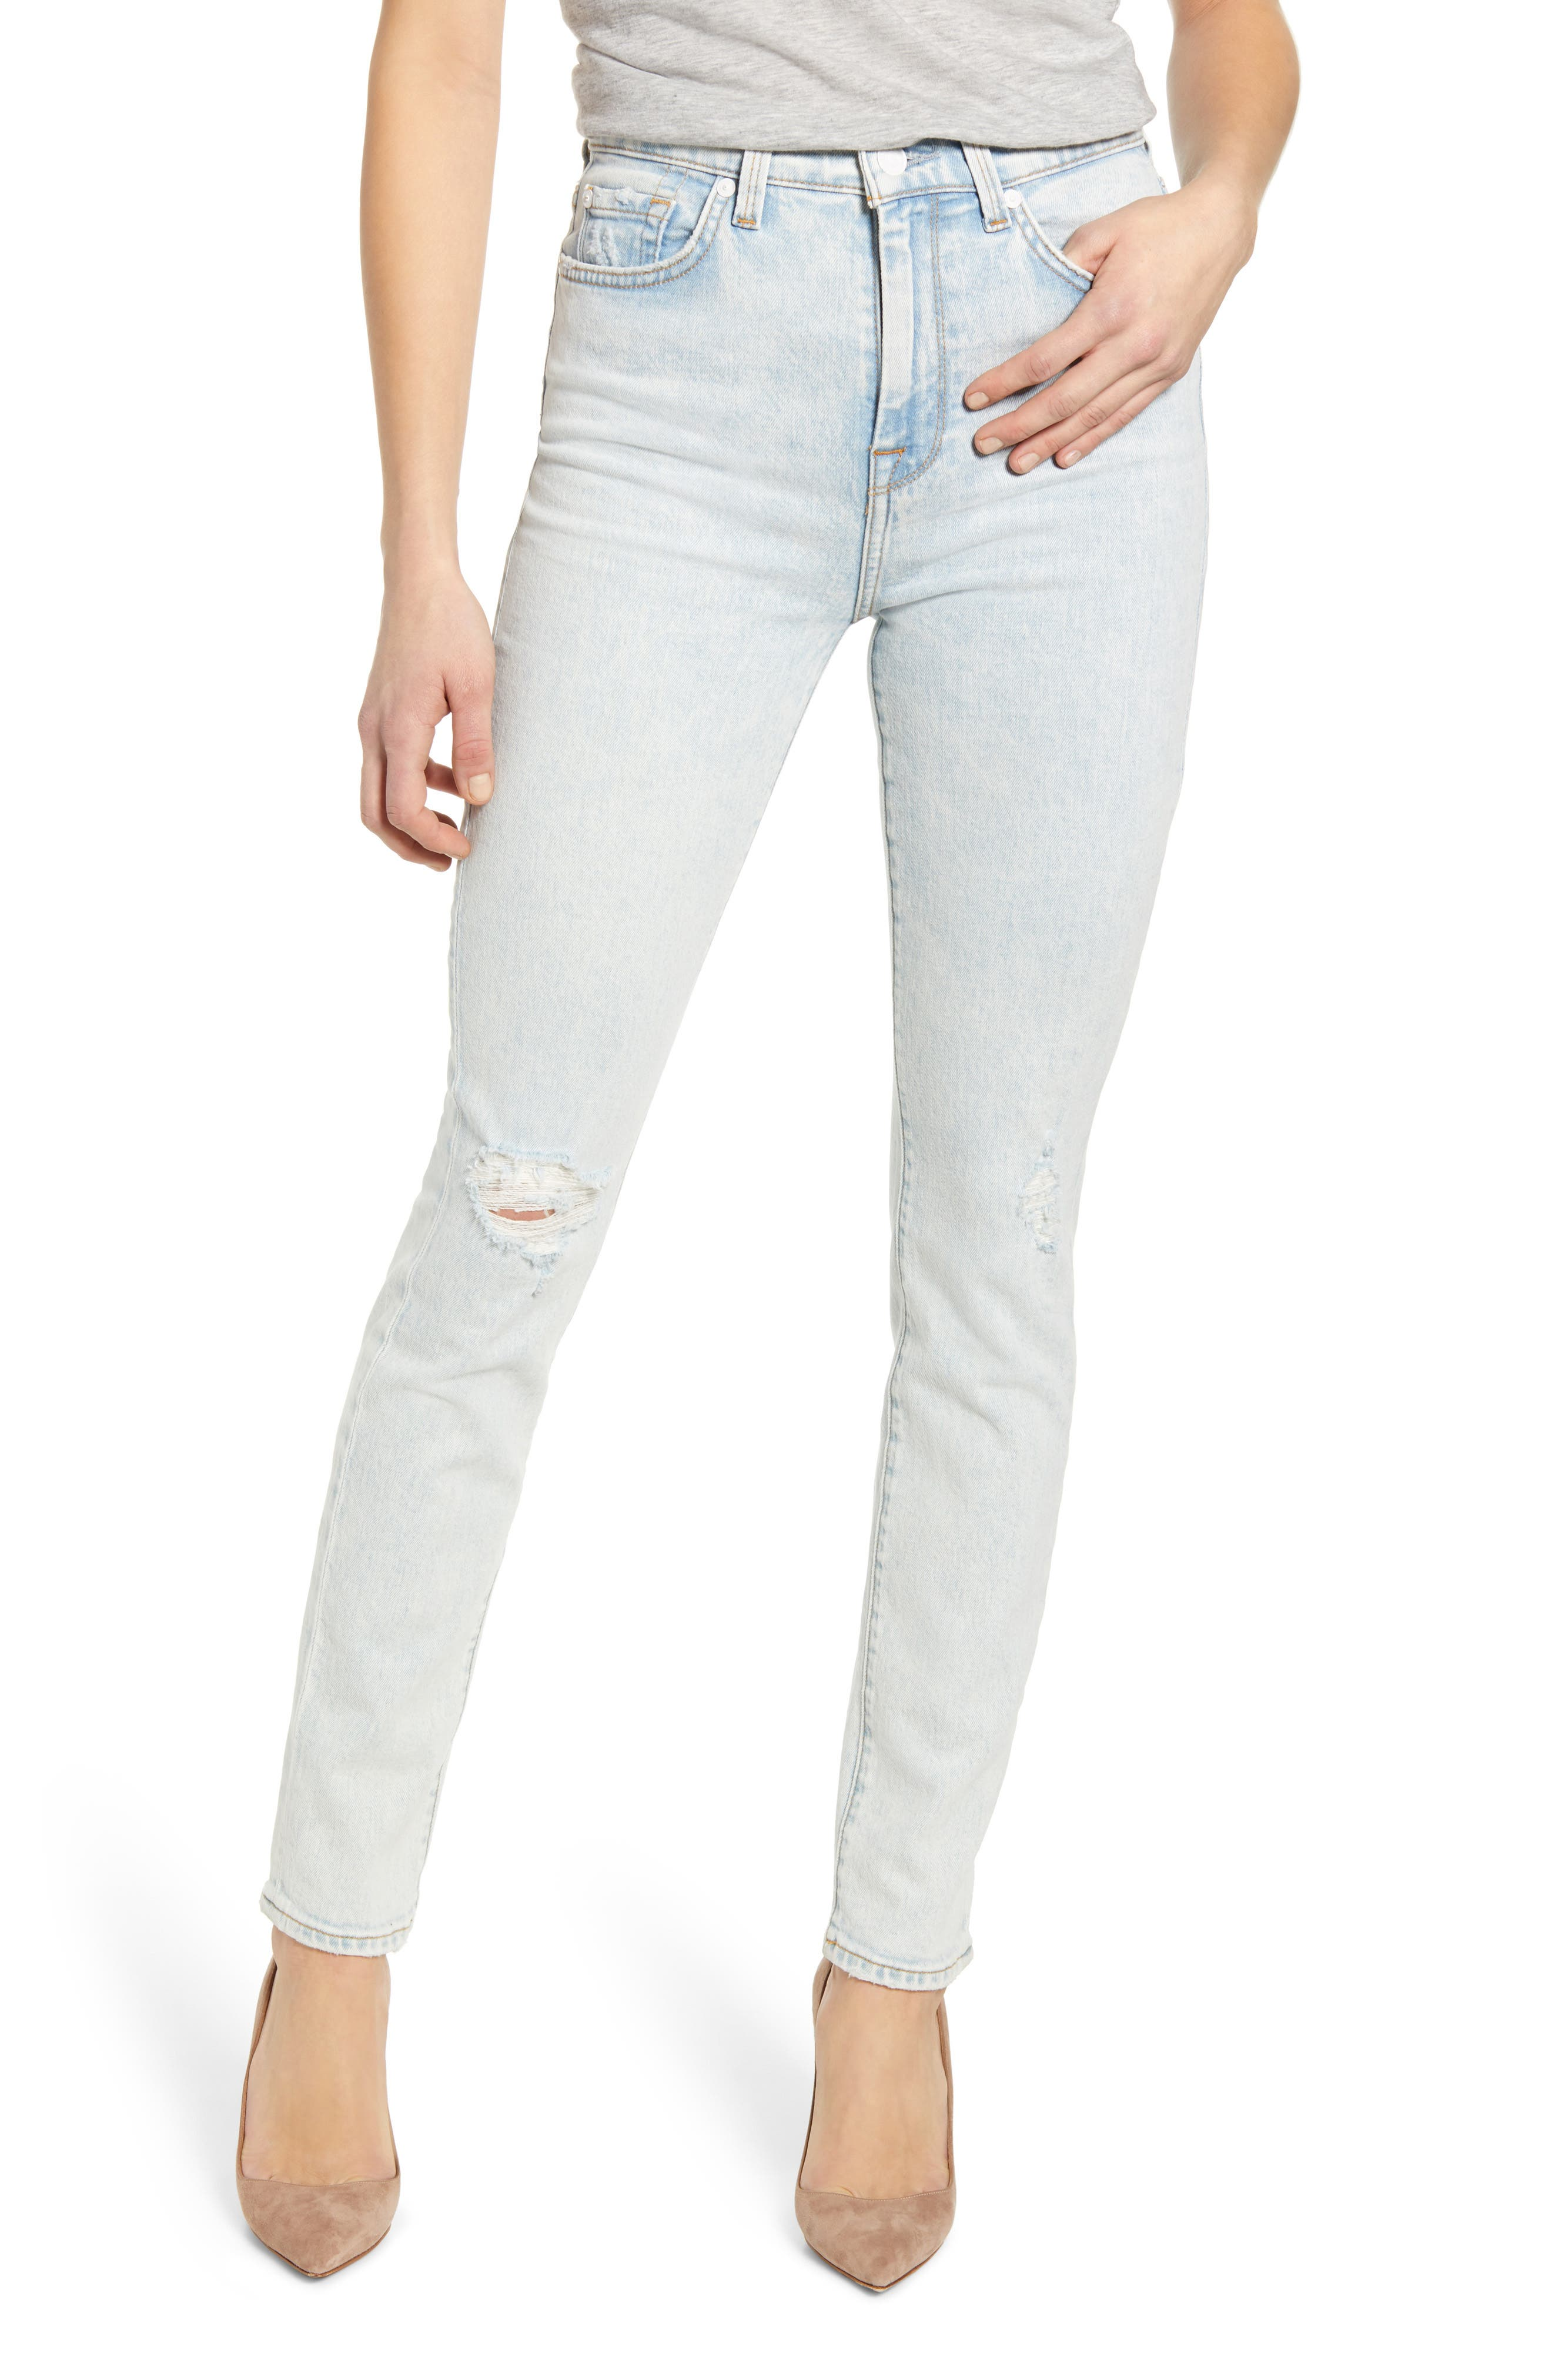 Women's 7 For All Mankind High Waist Skinny Jeans